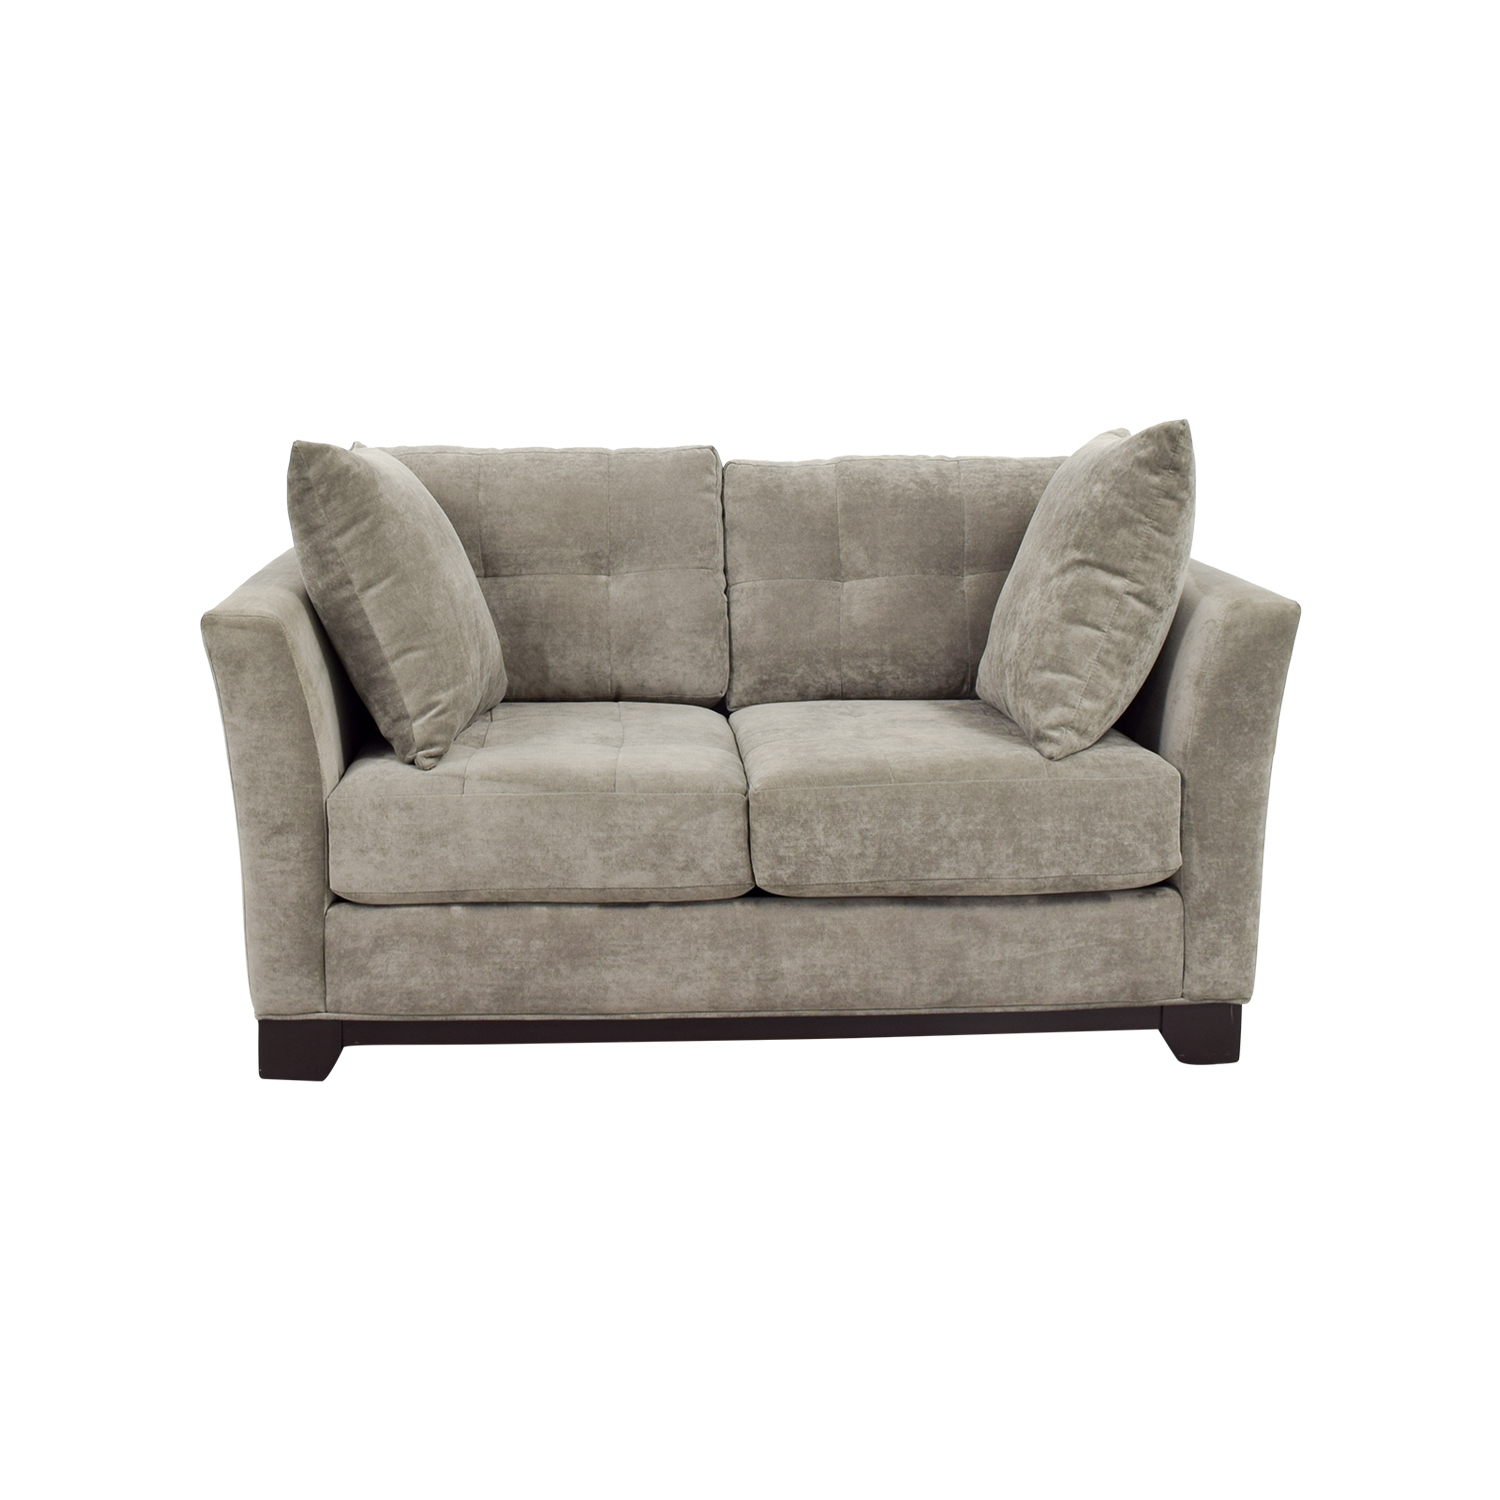 Macys Macys Elliot Microfiber Tugfted Loveseat nj